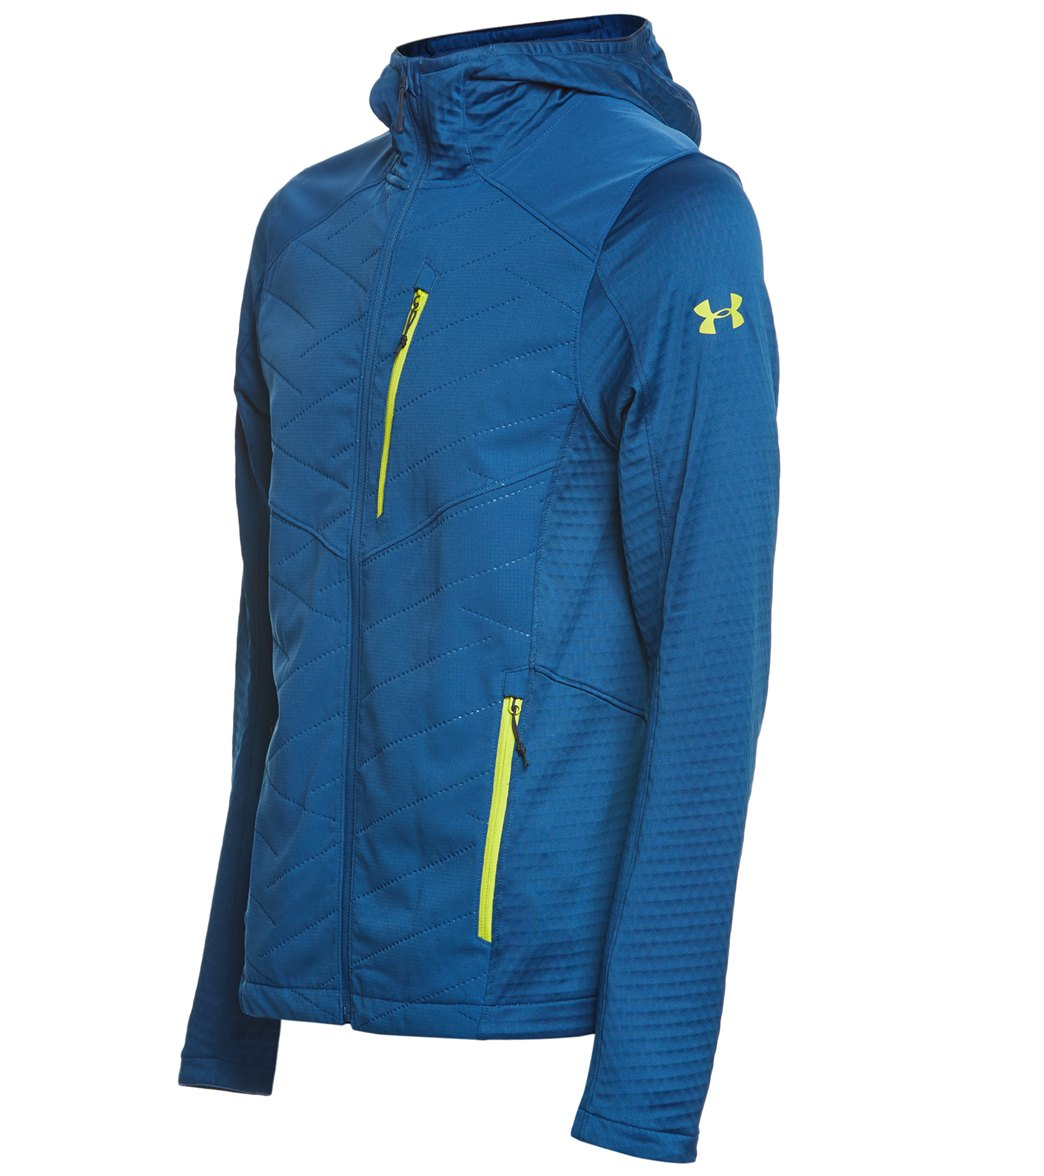 f9cd0f83b Under Armour Men's UA CGR Exert Jacket